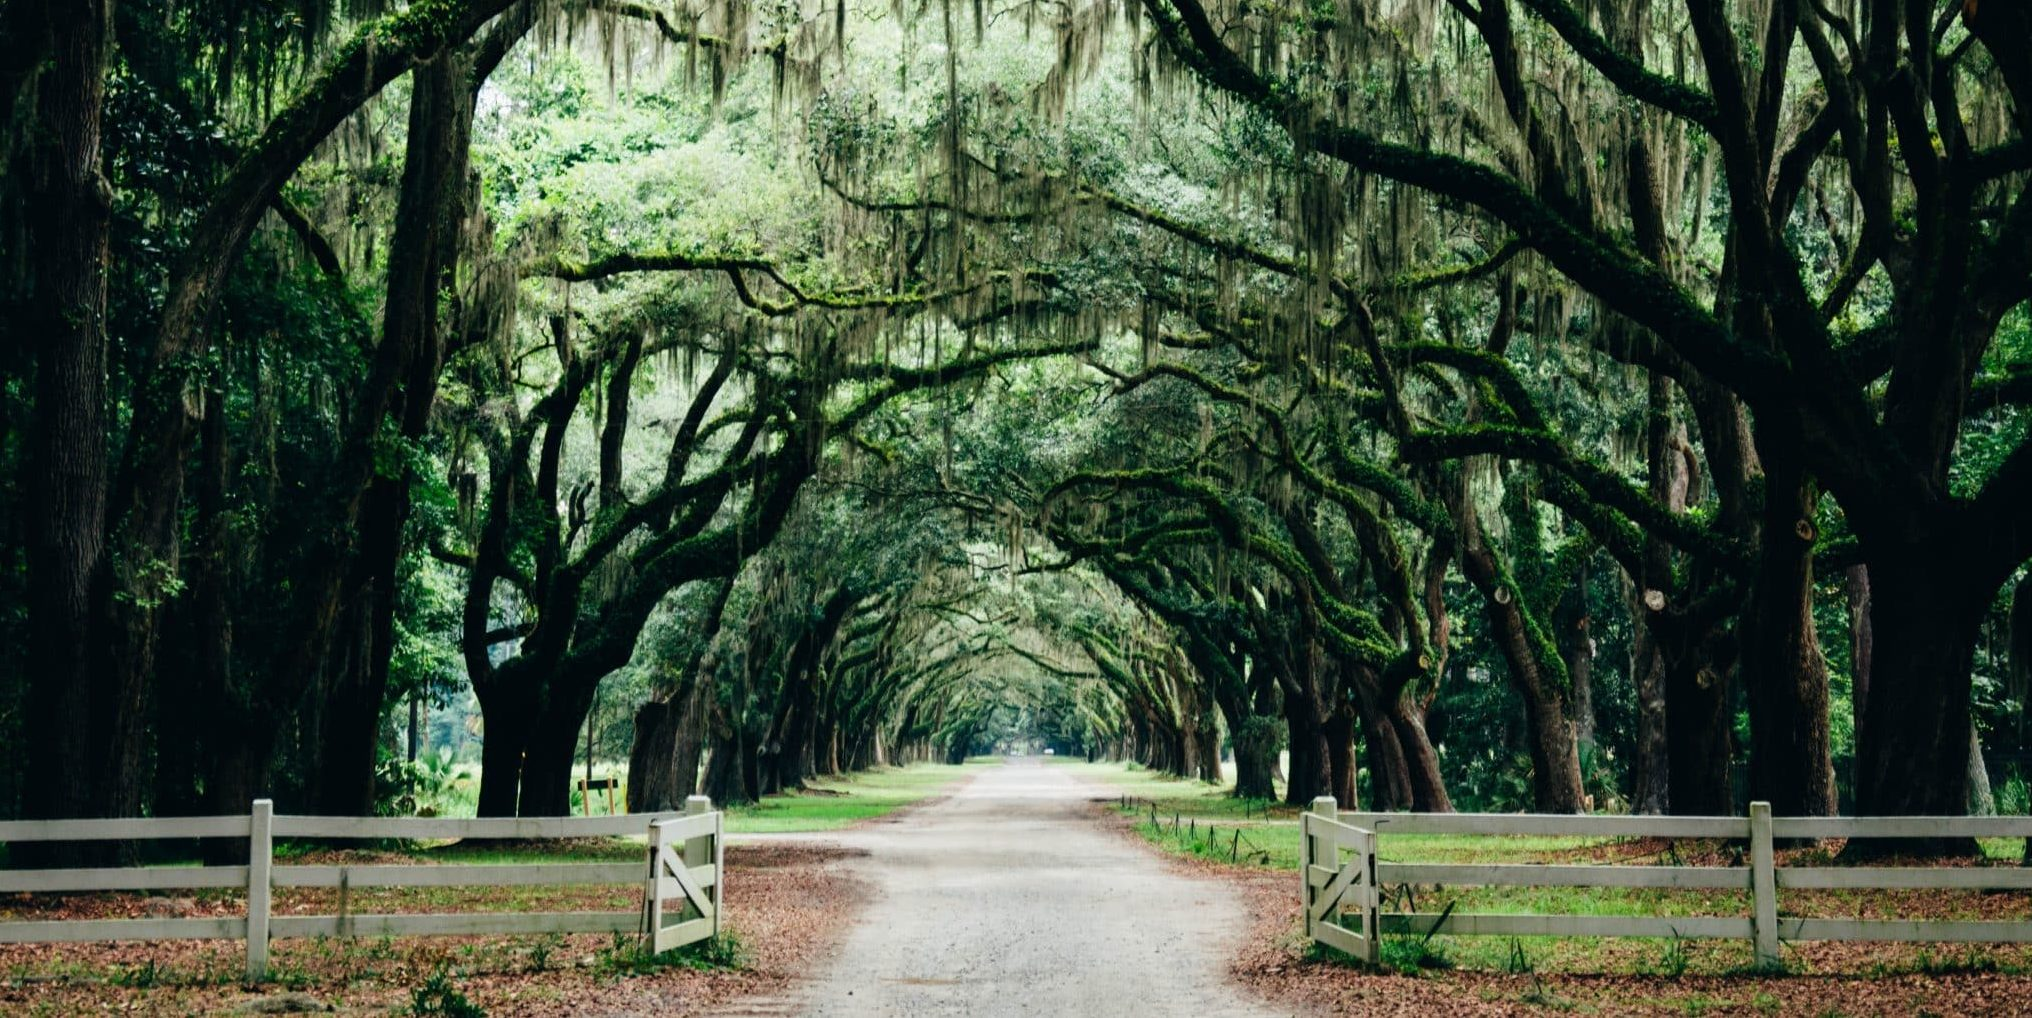 Savannah Georgia Romantic Destinations USA